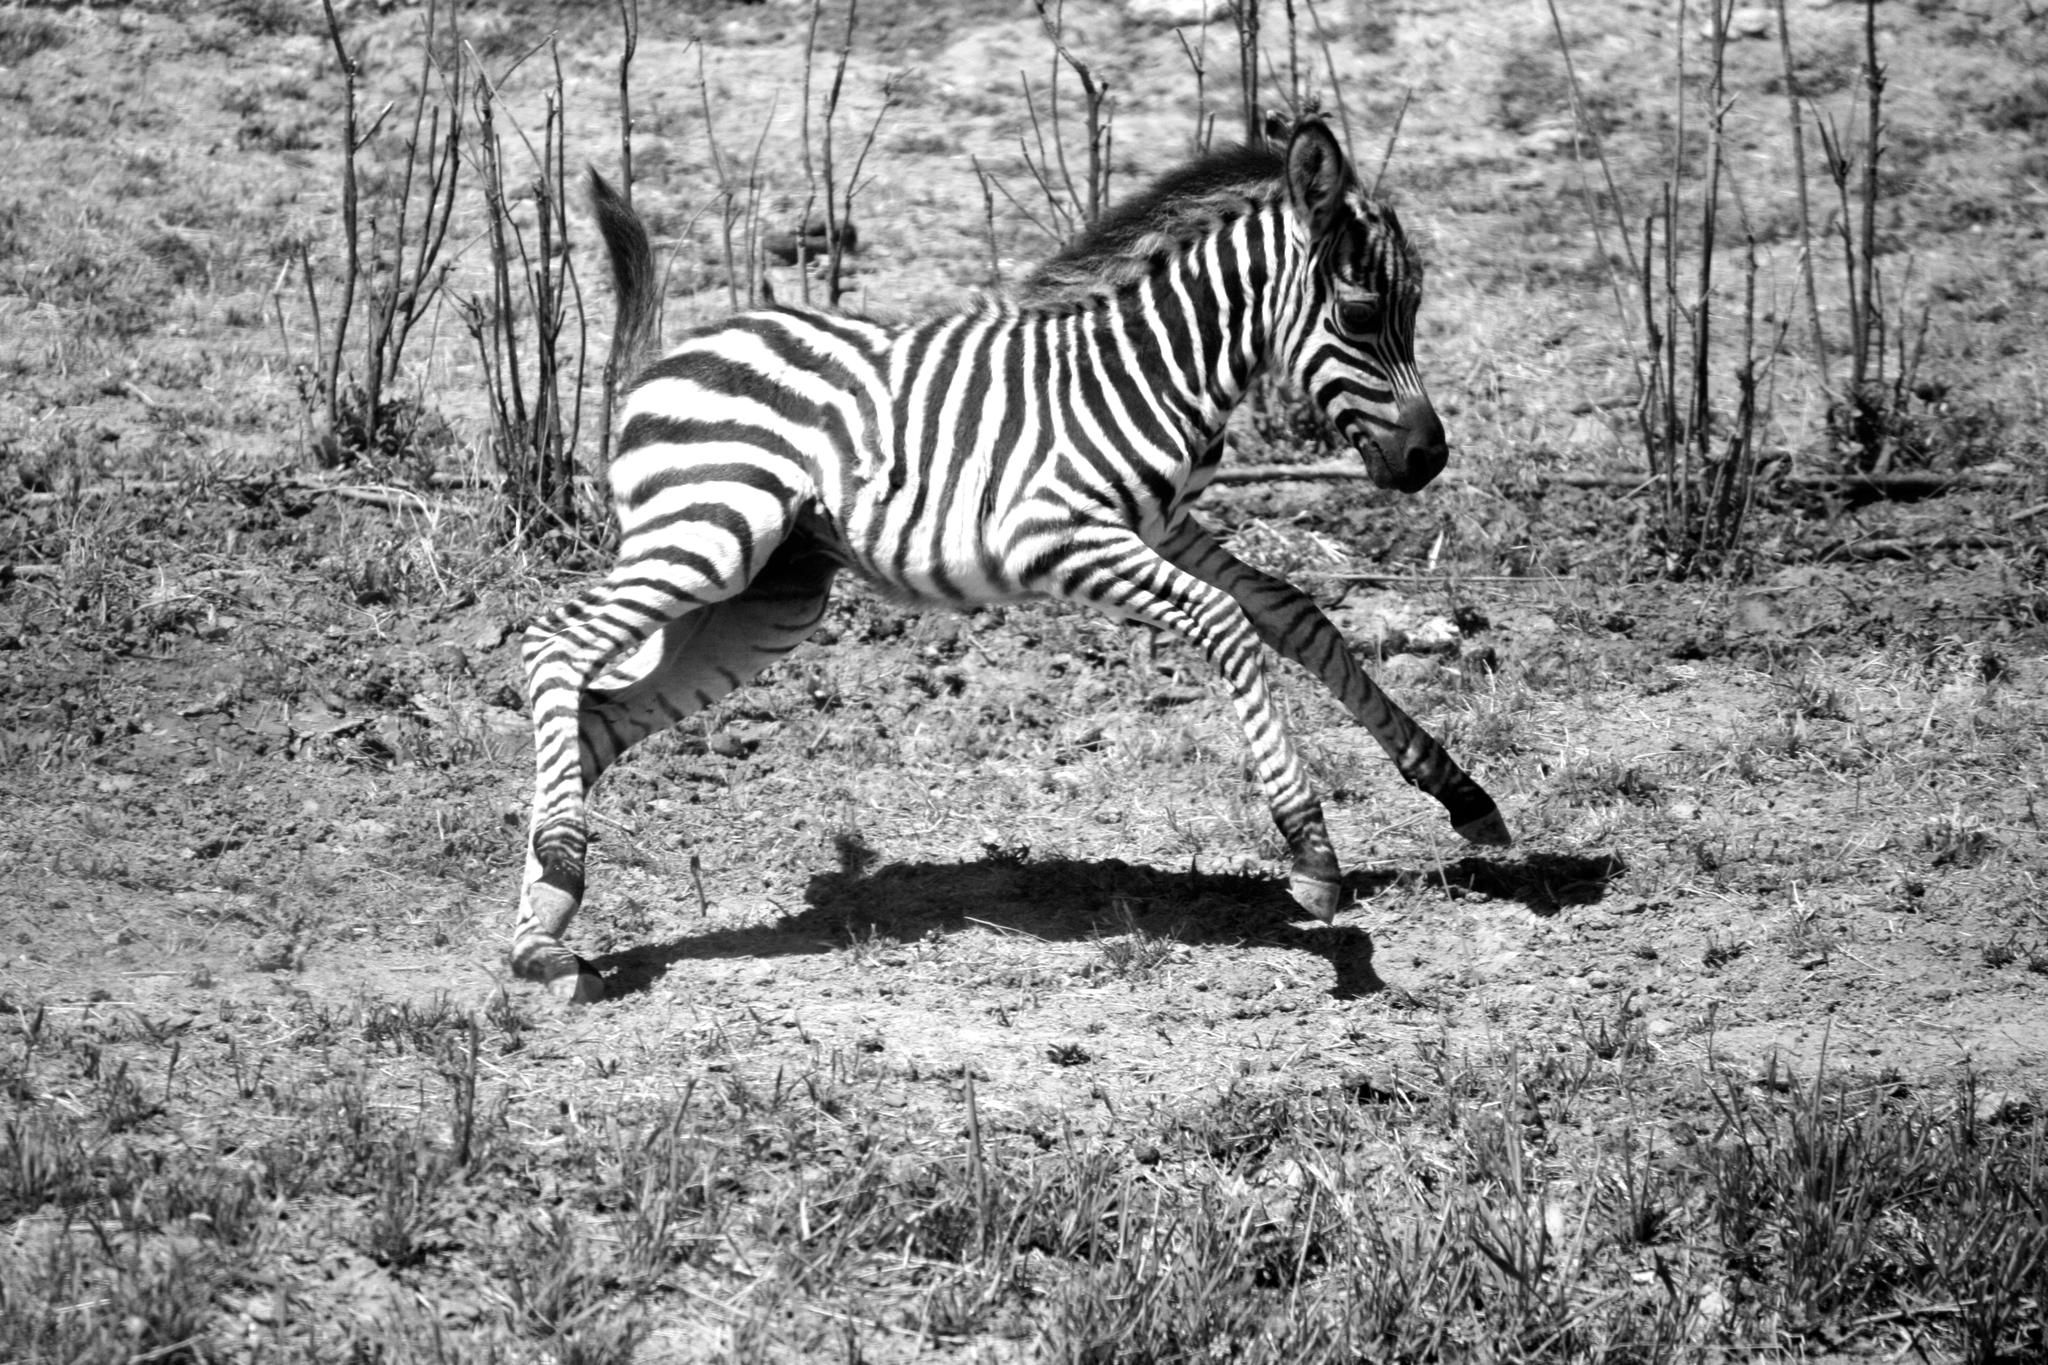 Baby zebra running  By my daughter, cecilia mezzanotte